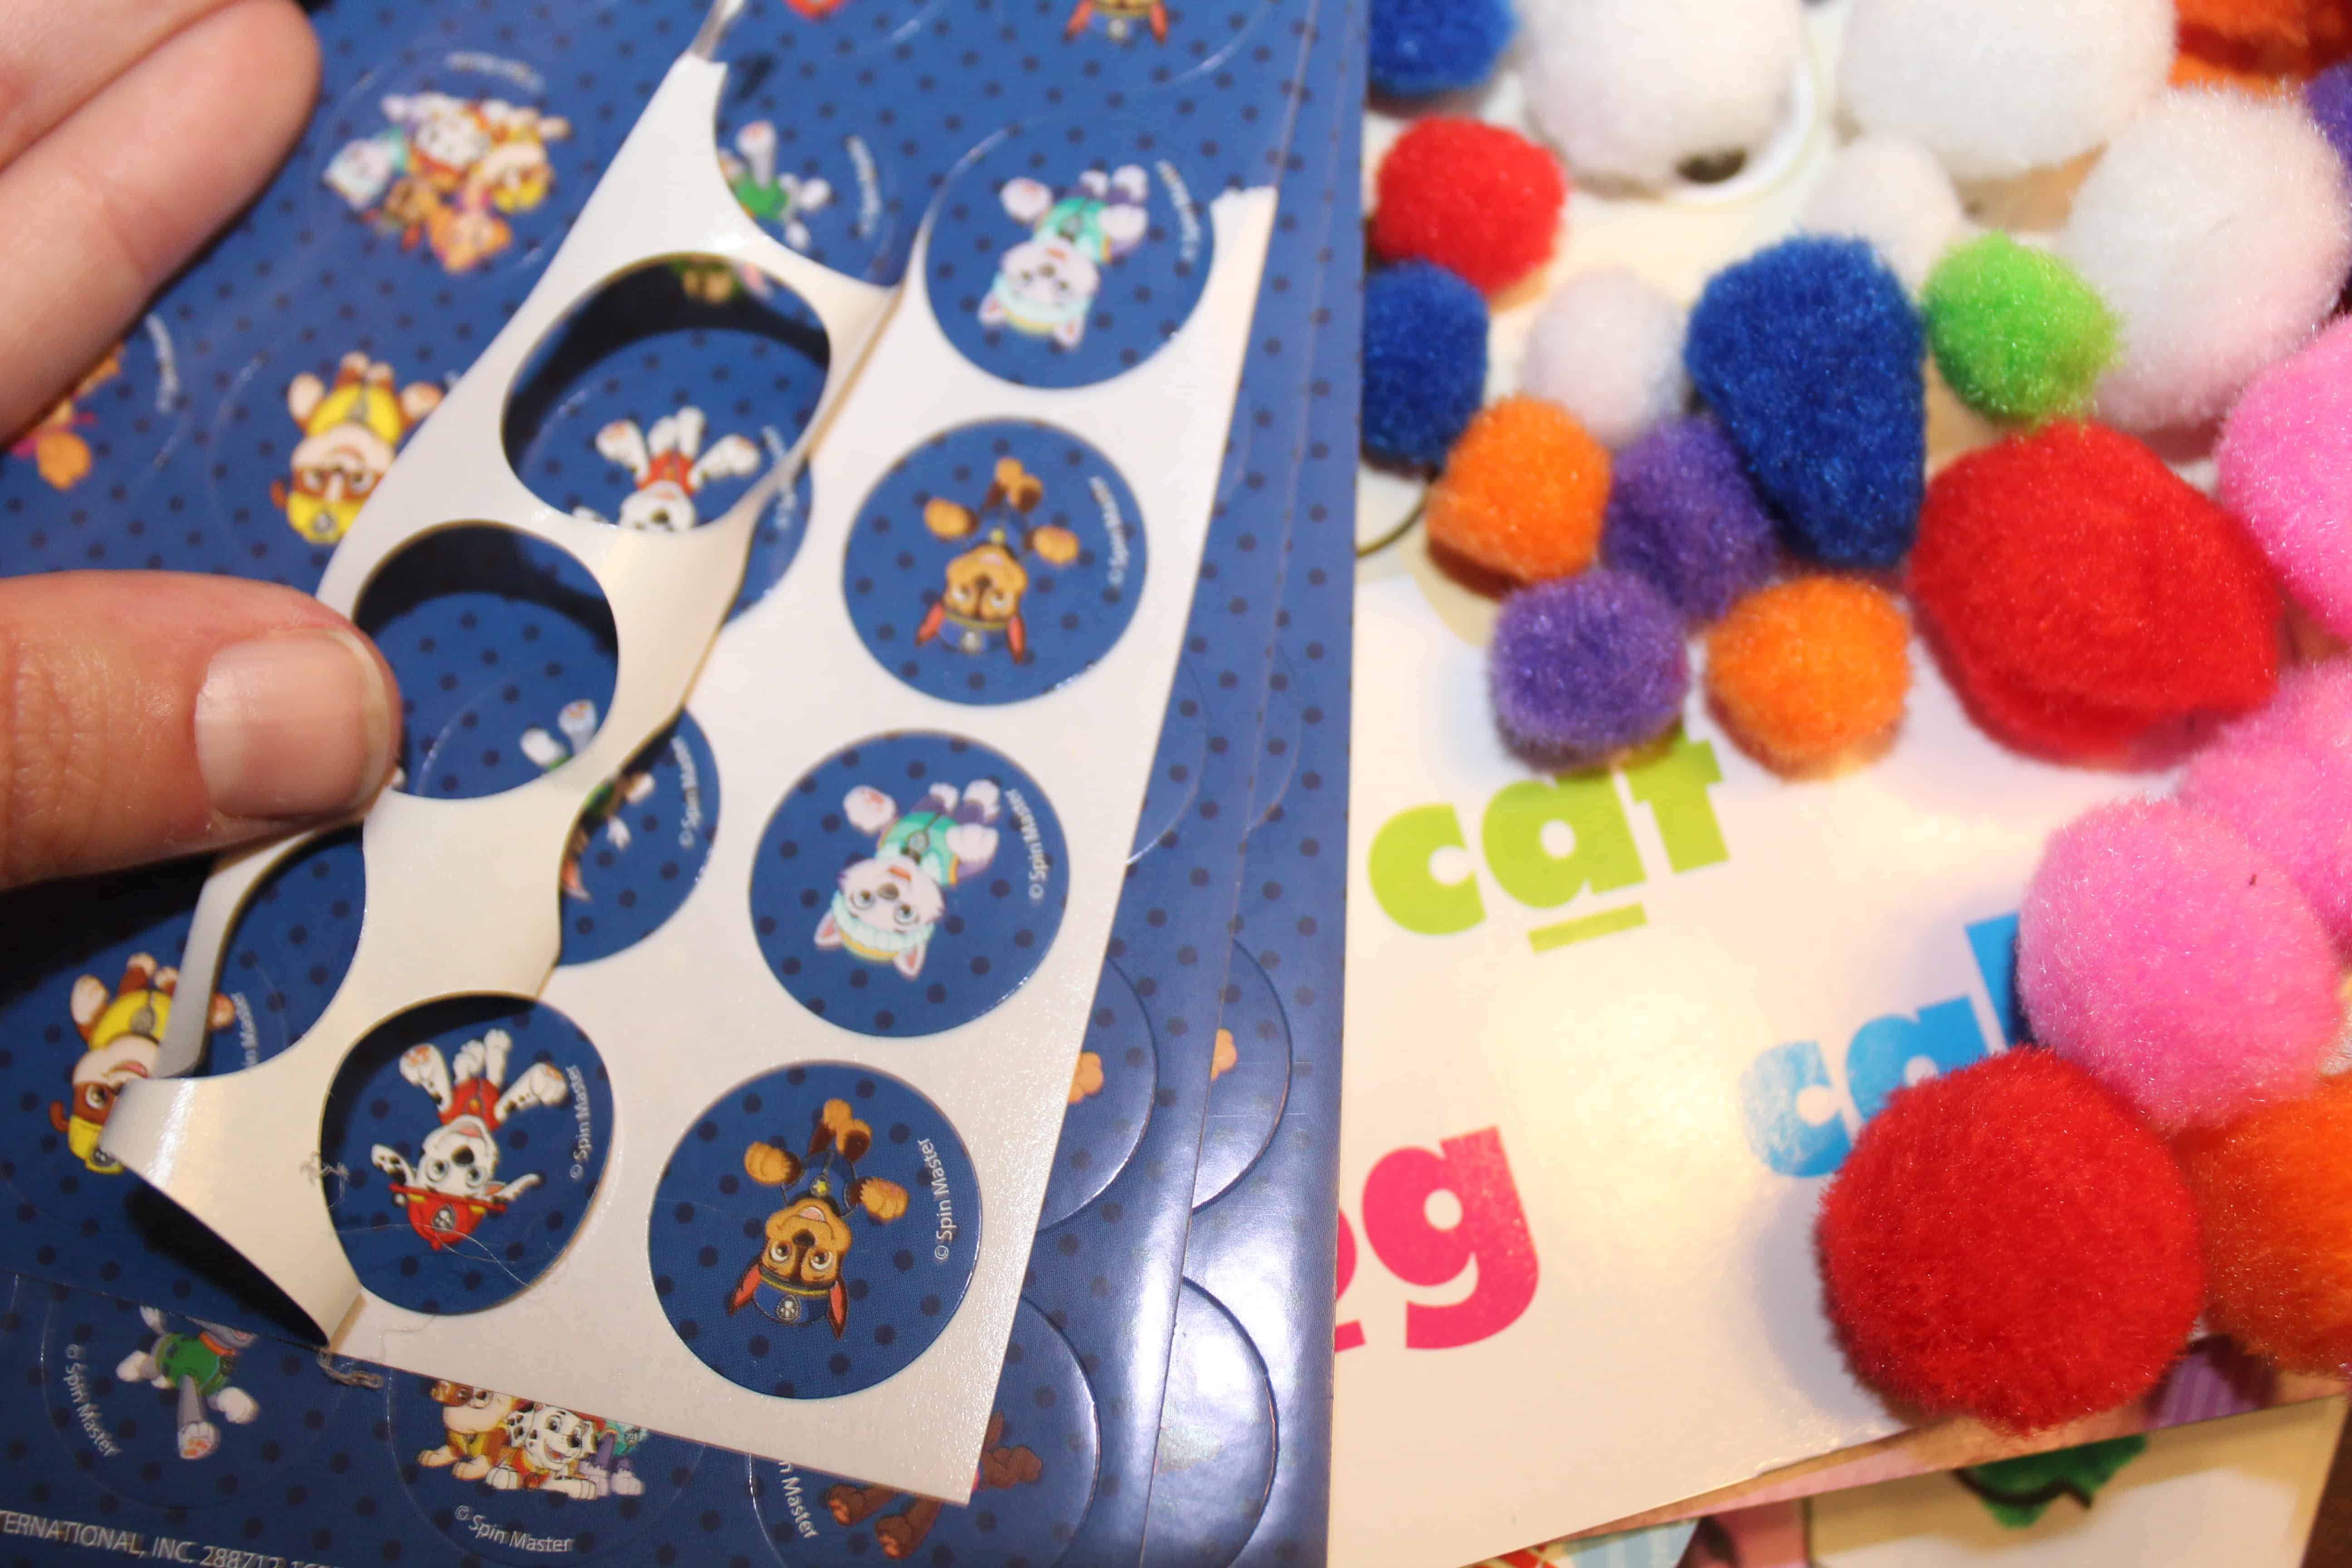 Regular stickers with boarder being removed and colored cotton balls.